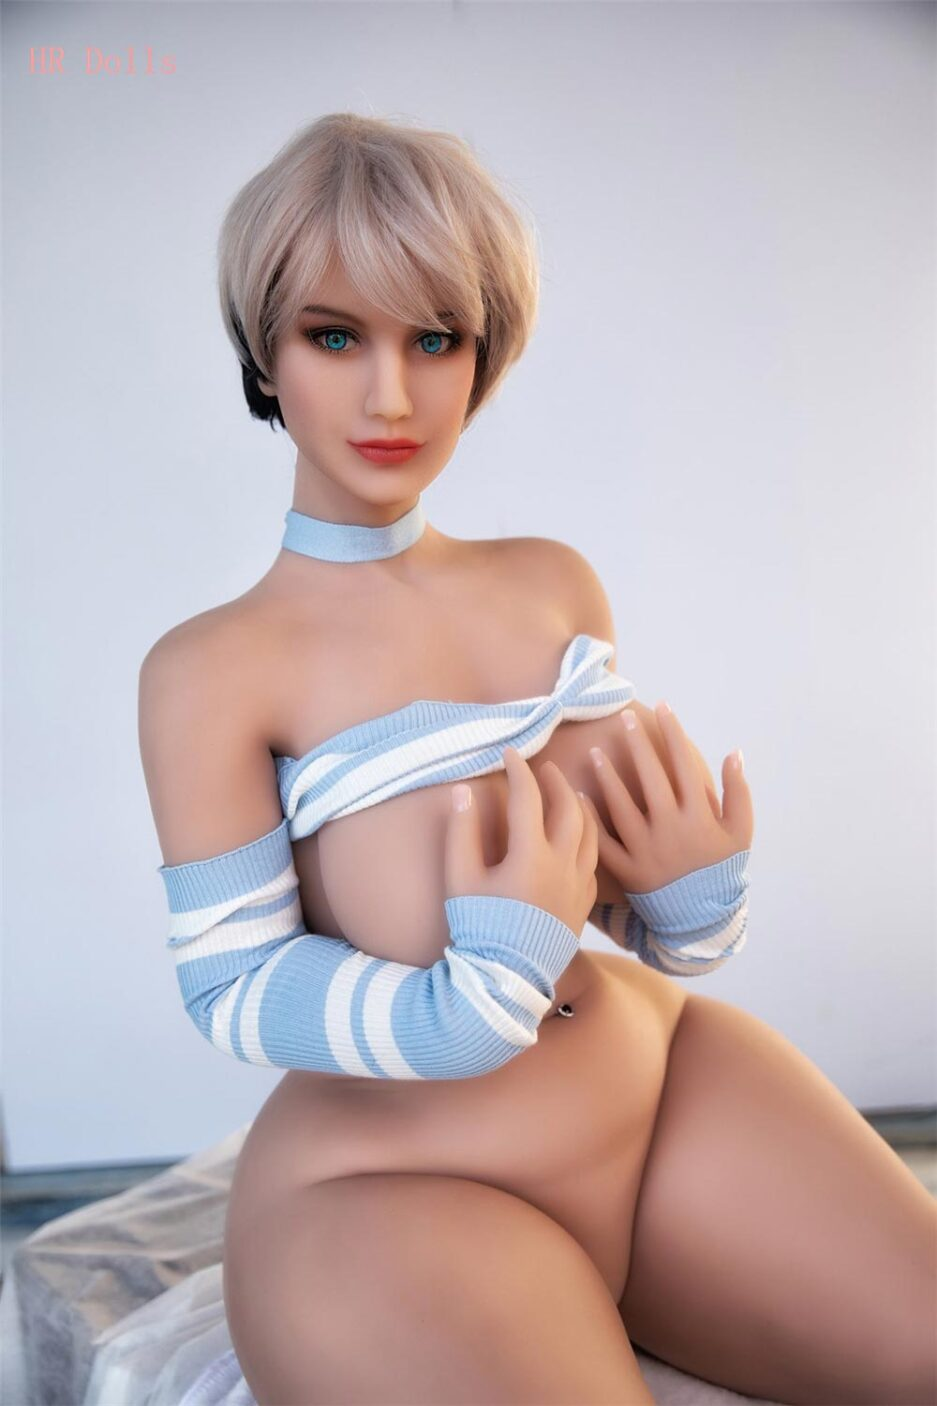 Big breasted sex doll with hands on chest